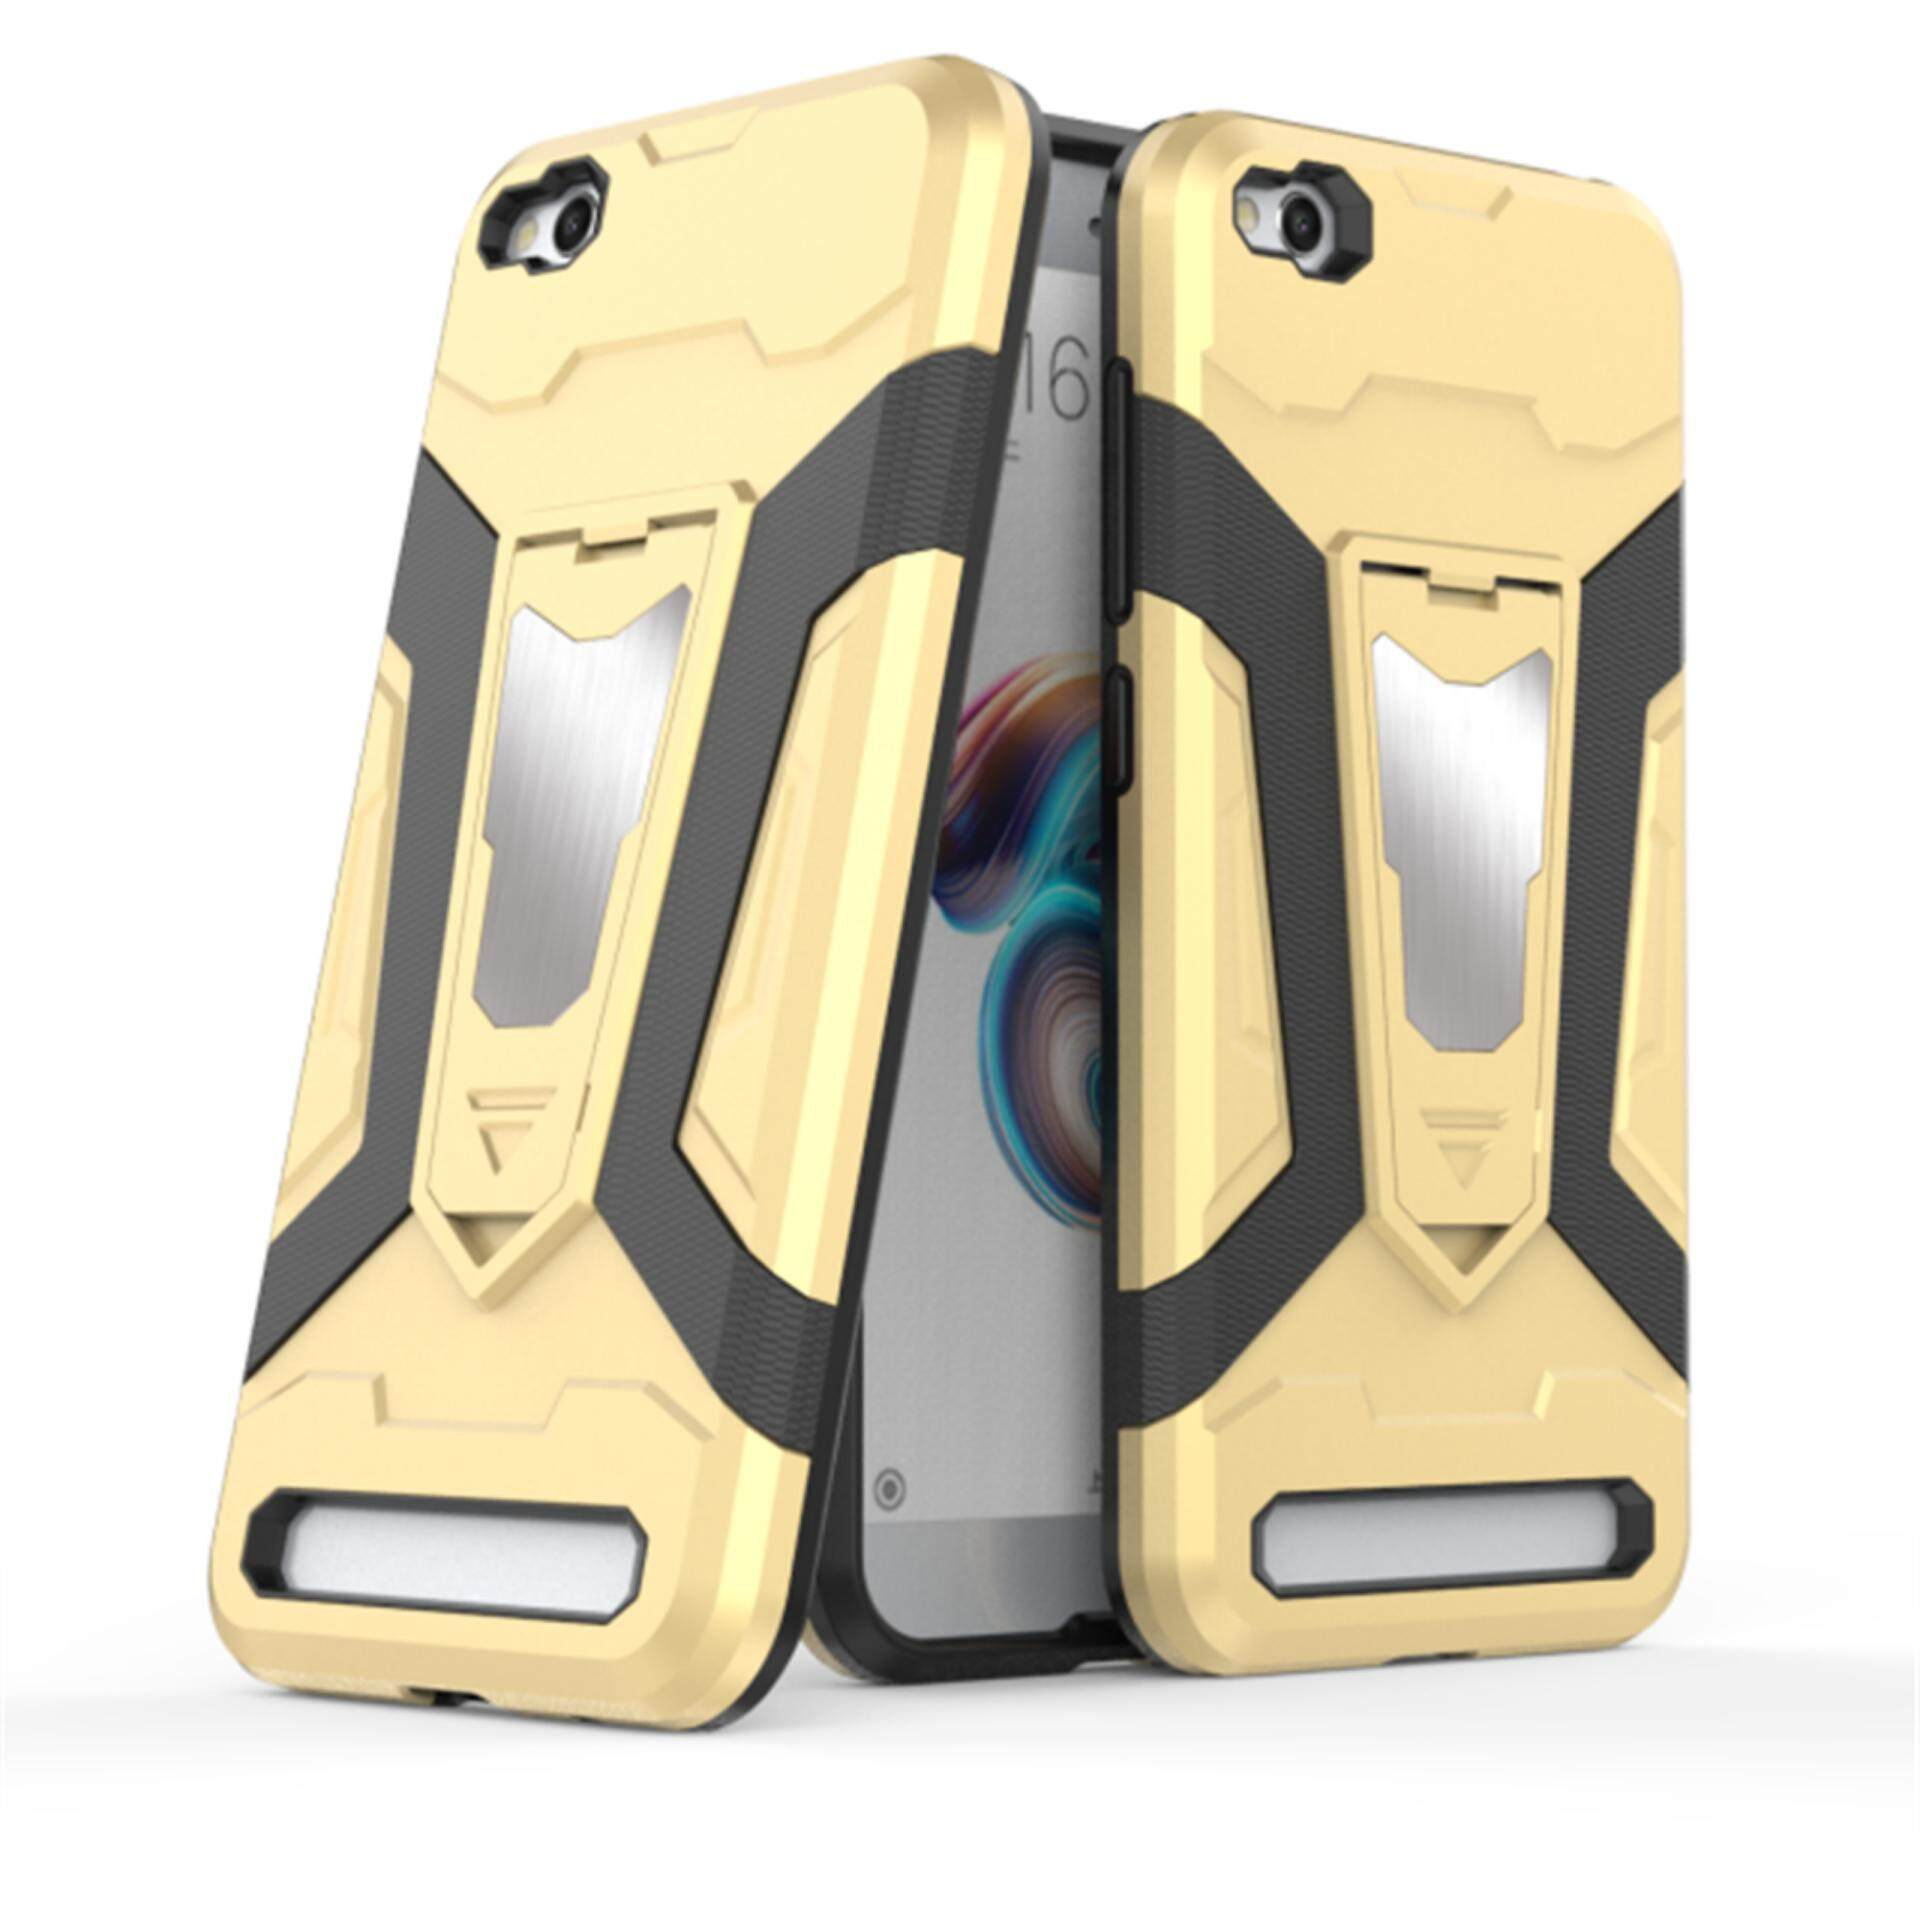 Features Mi 5a Redmi Hongmi Case Iron Man Armor Tactical Grip Xiaomi Gold Grey Tam Baru Kickstand Shockproof Hard Bumper Shell